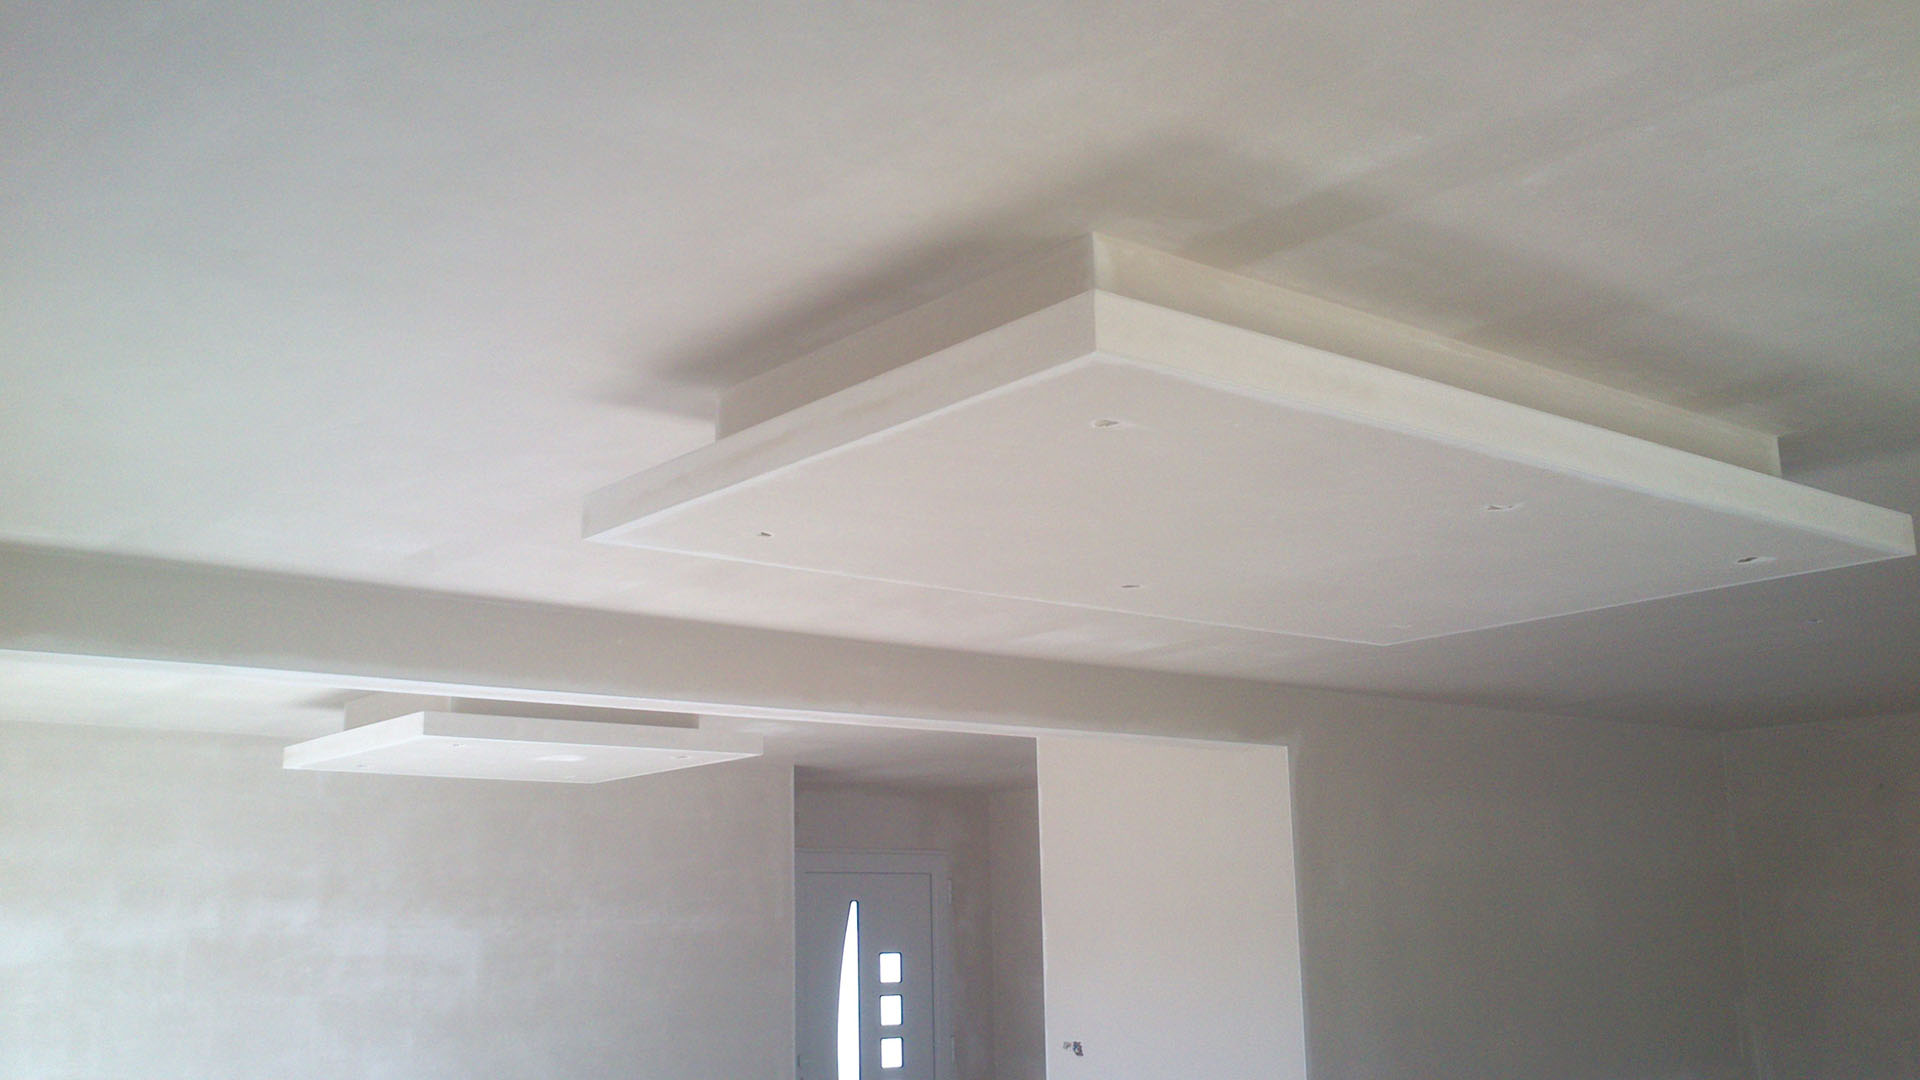 Platrier brest finist re 29 iroise platrerie for Fabriquer un faux plafond